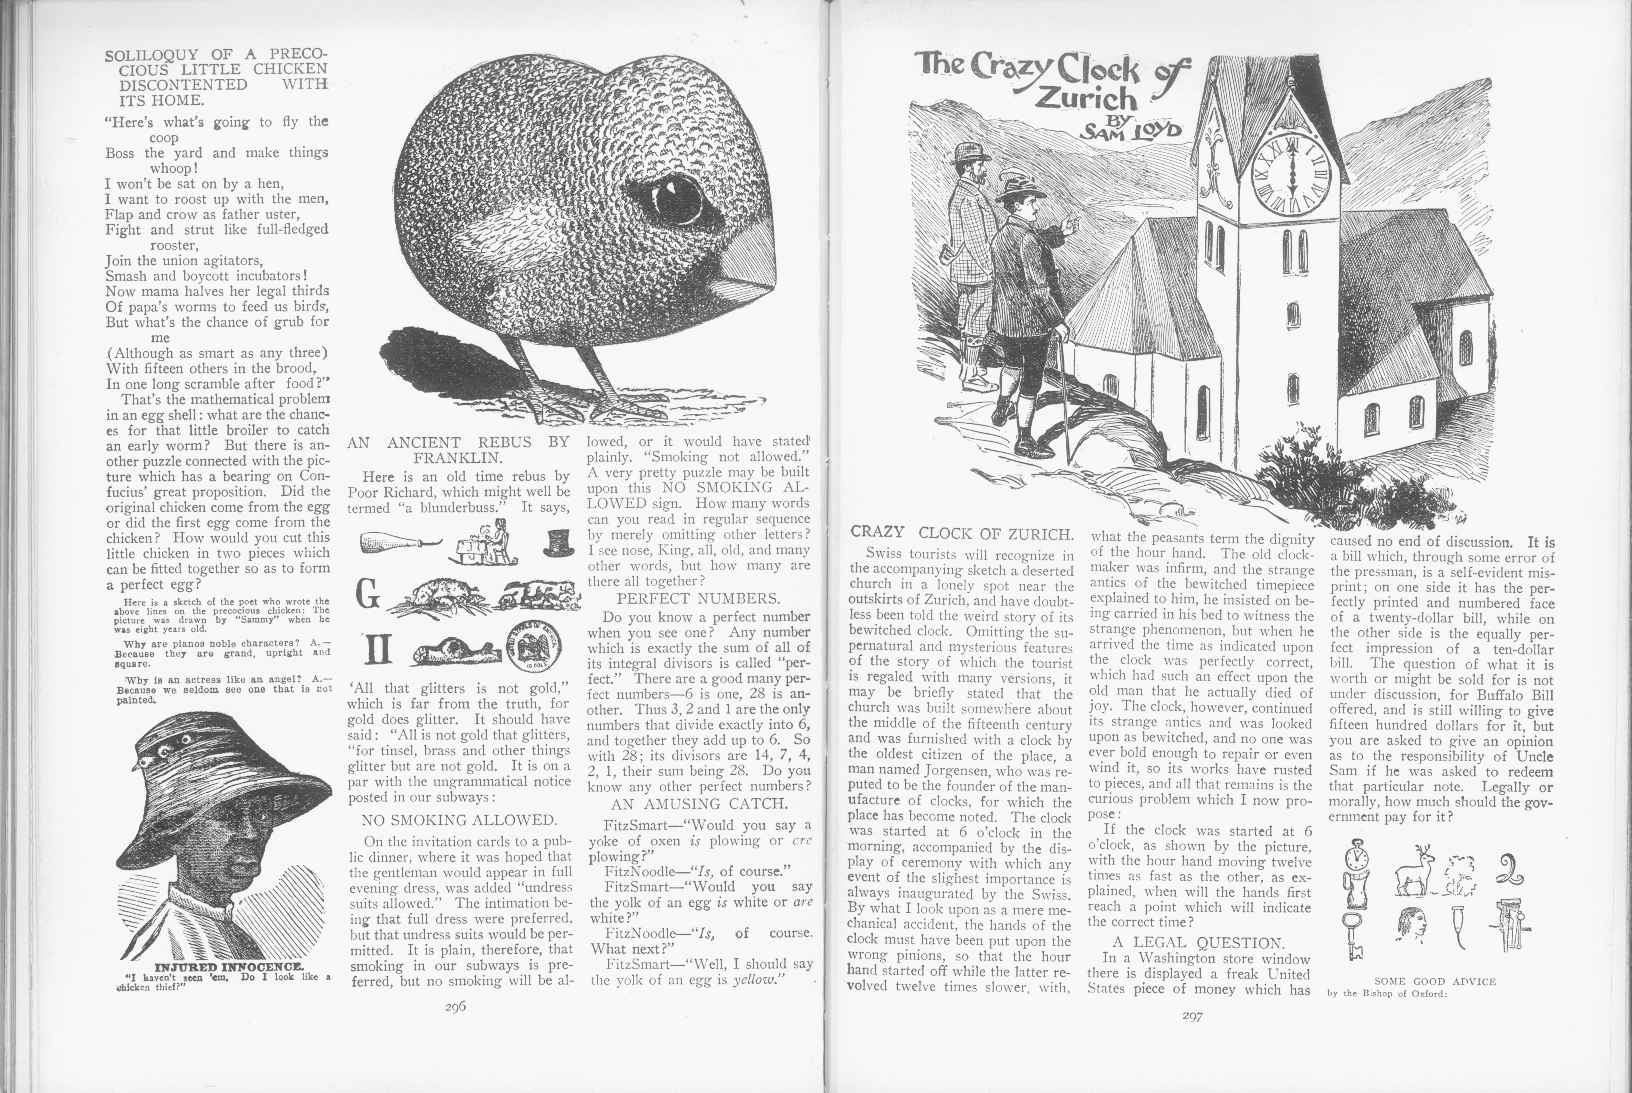 Sam Loyd - Cyclopedia of Puzzles - page 296-297